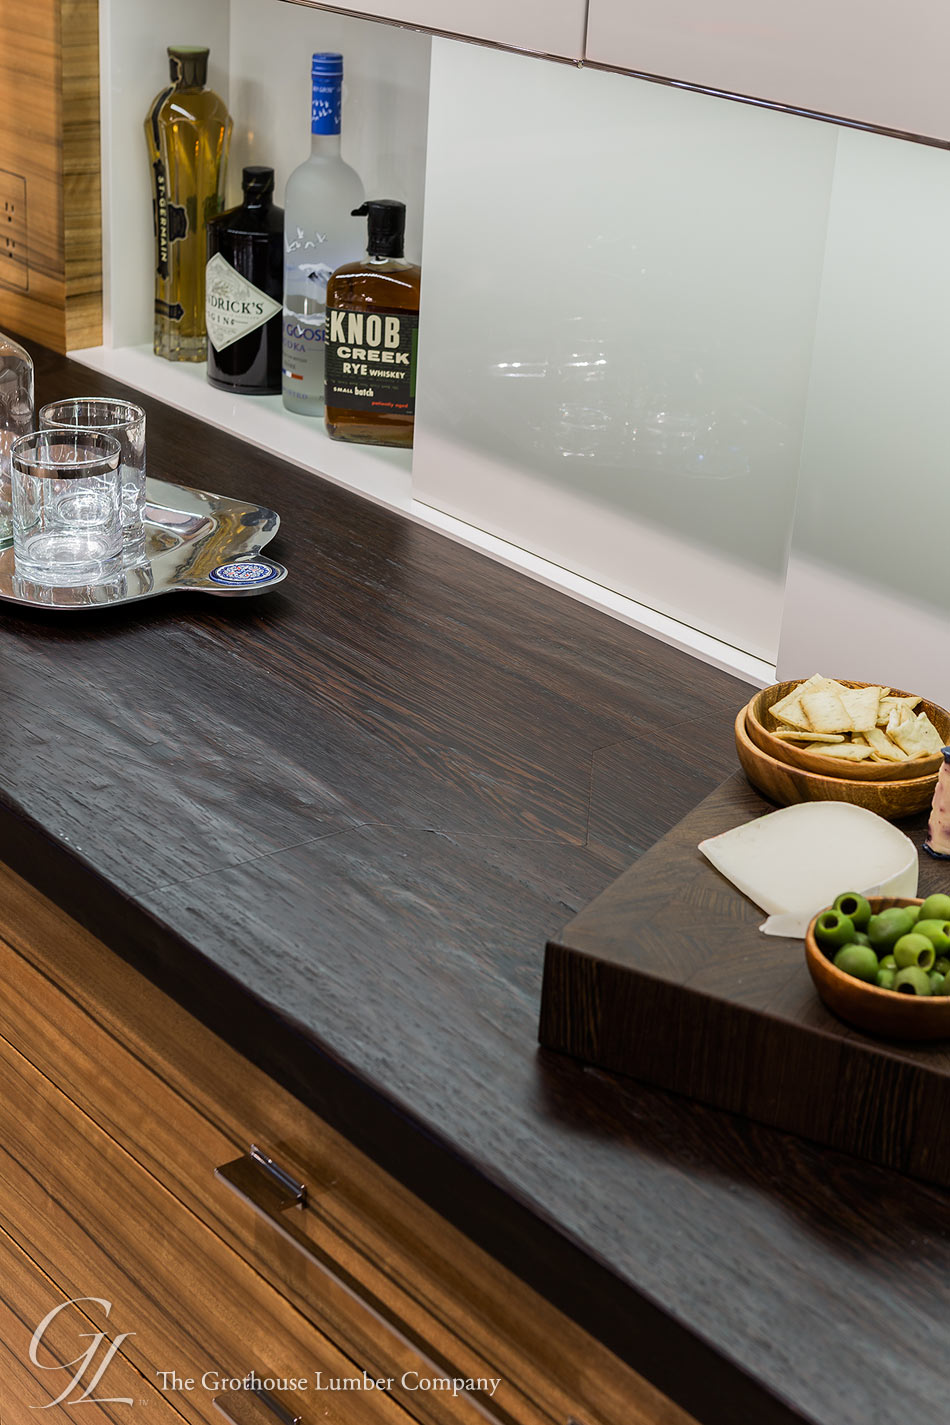 Wenge Dark Wood Countertops with Hand Planed Distressing